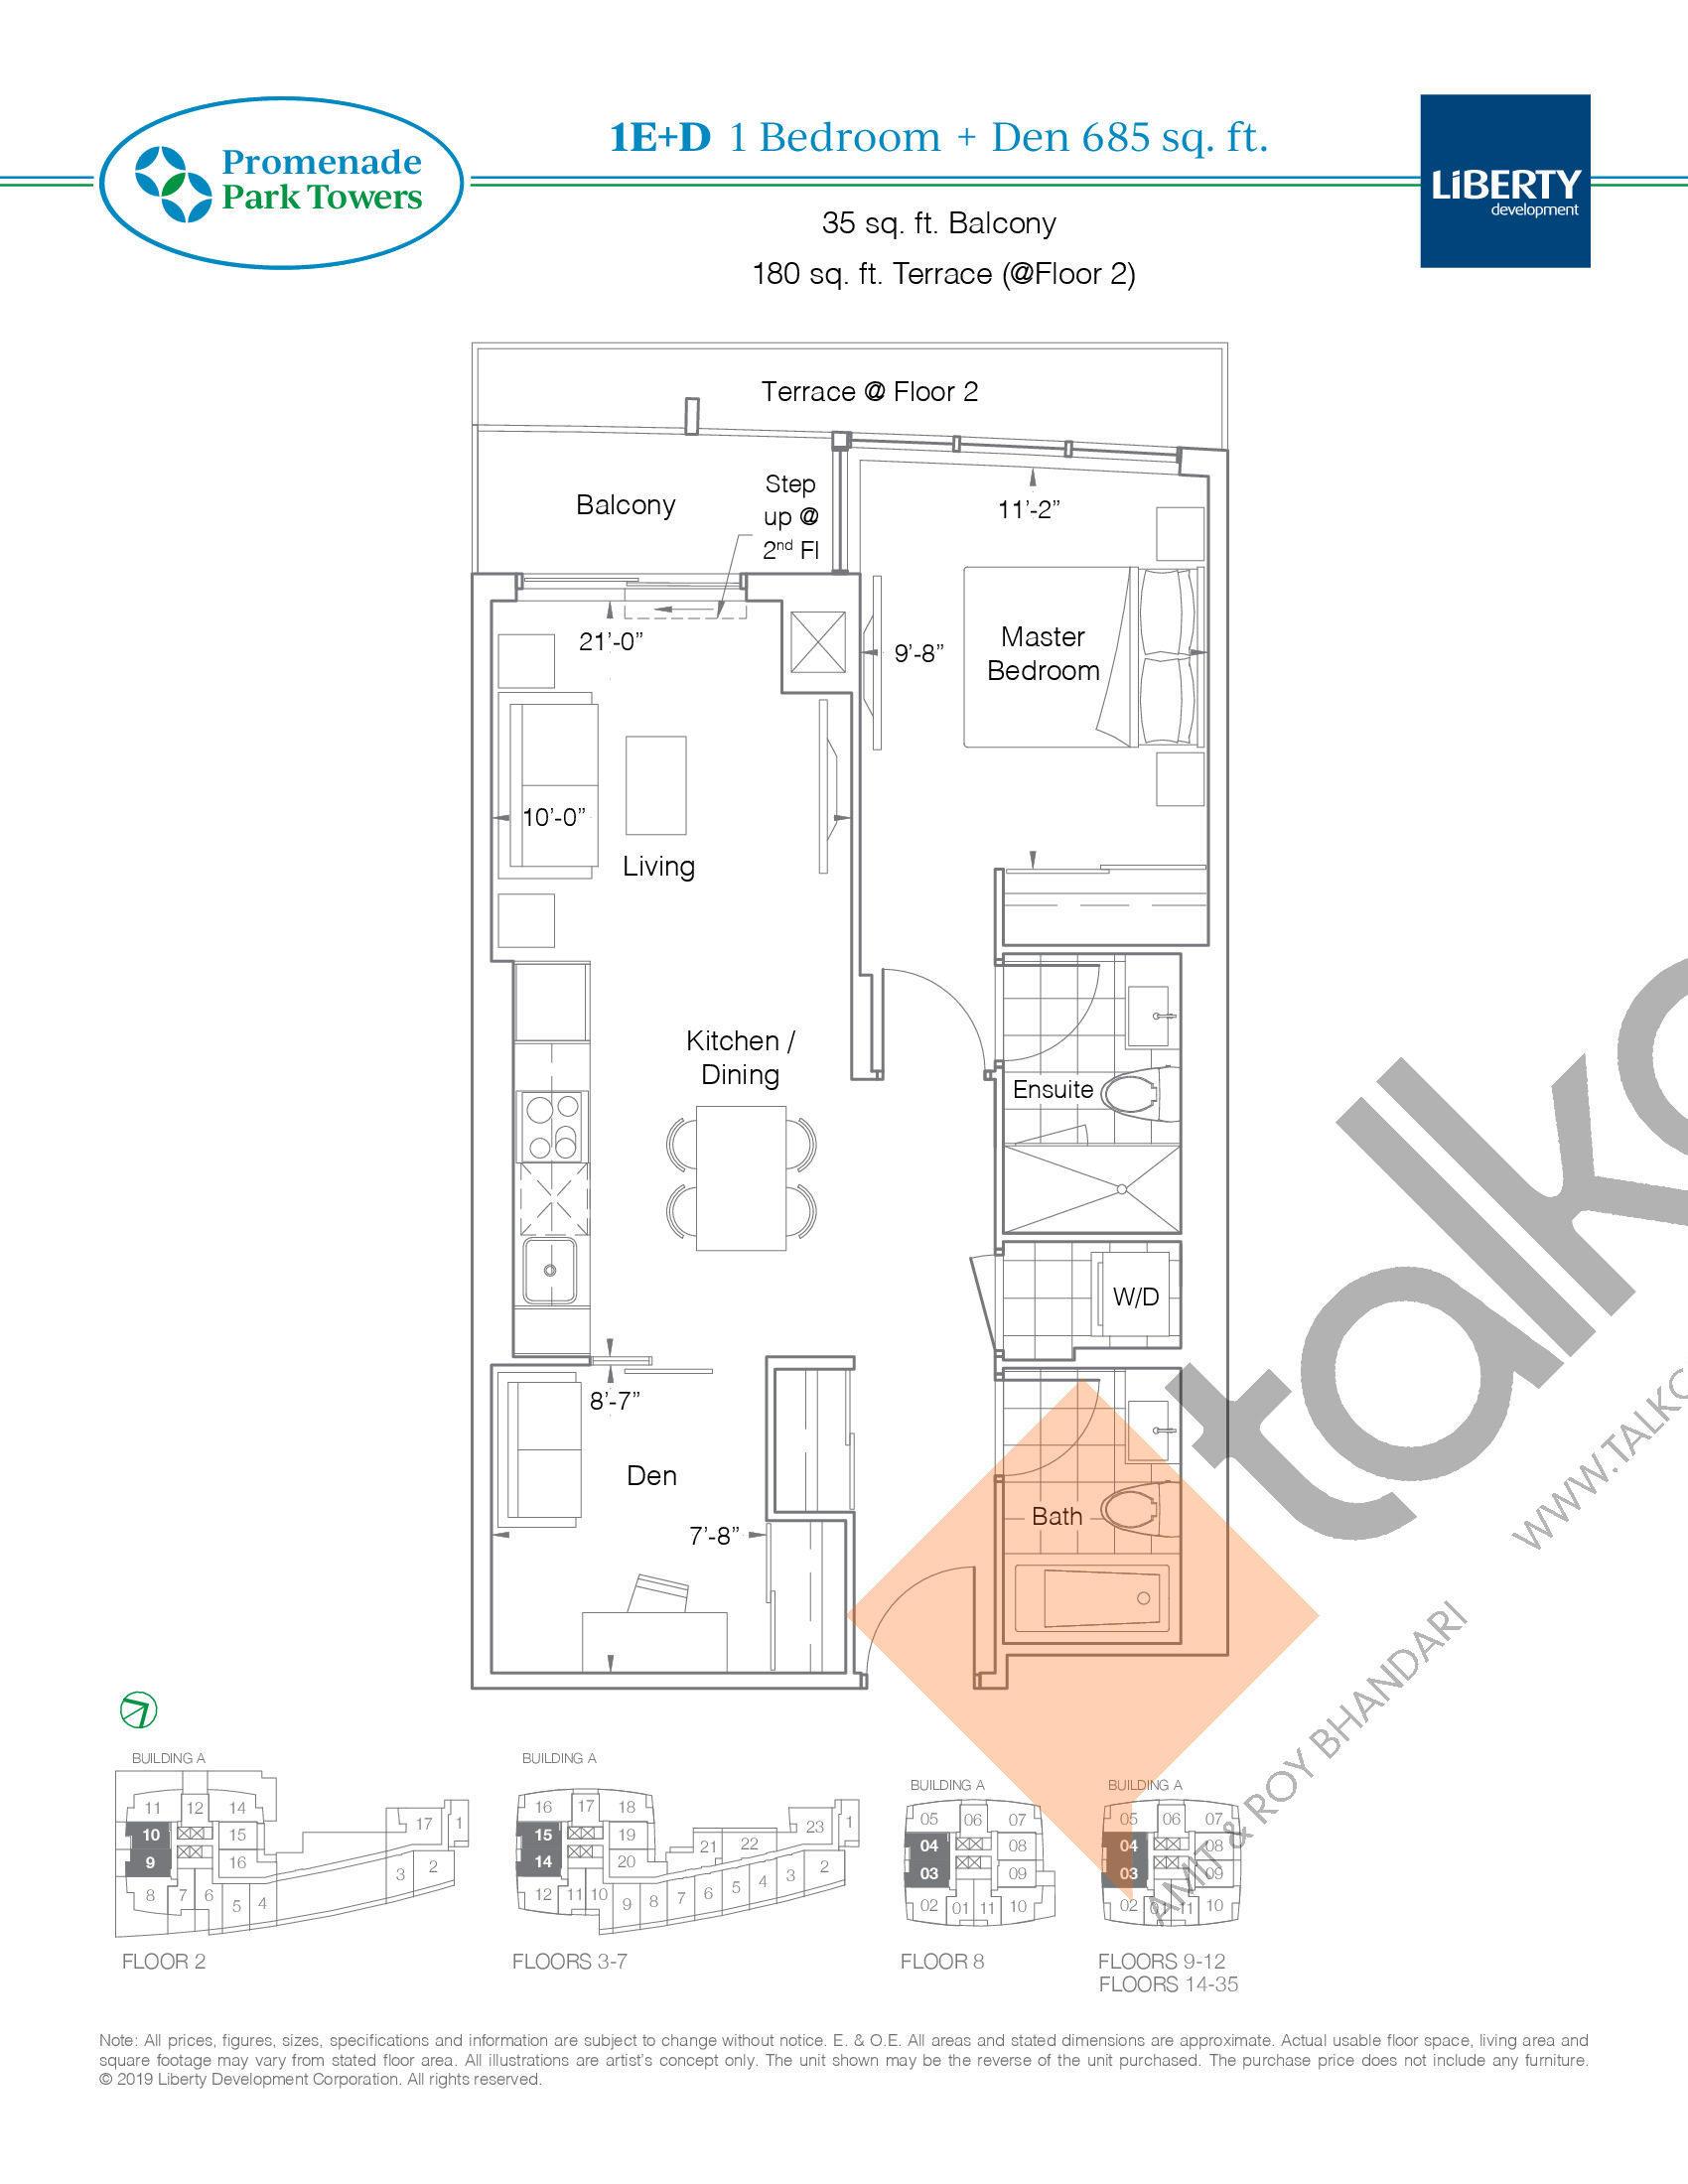 1E+D Floor Plan at Promenade Park Towers Condos - 685 sq.ft